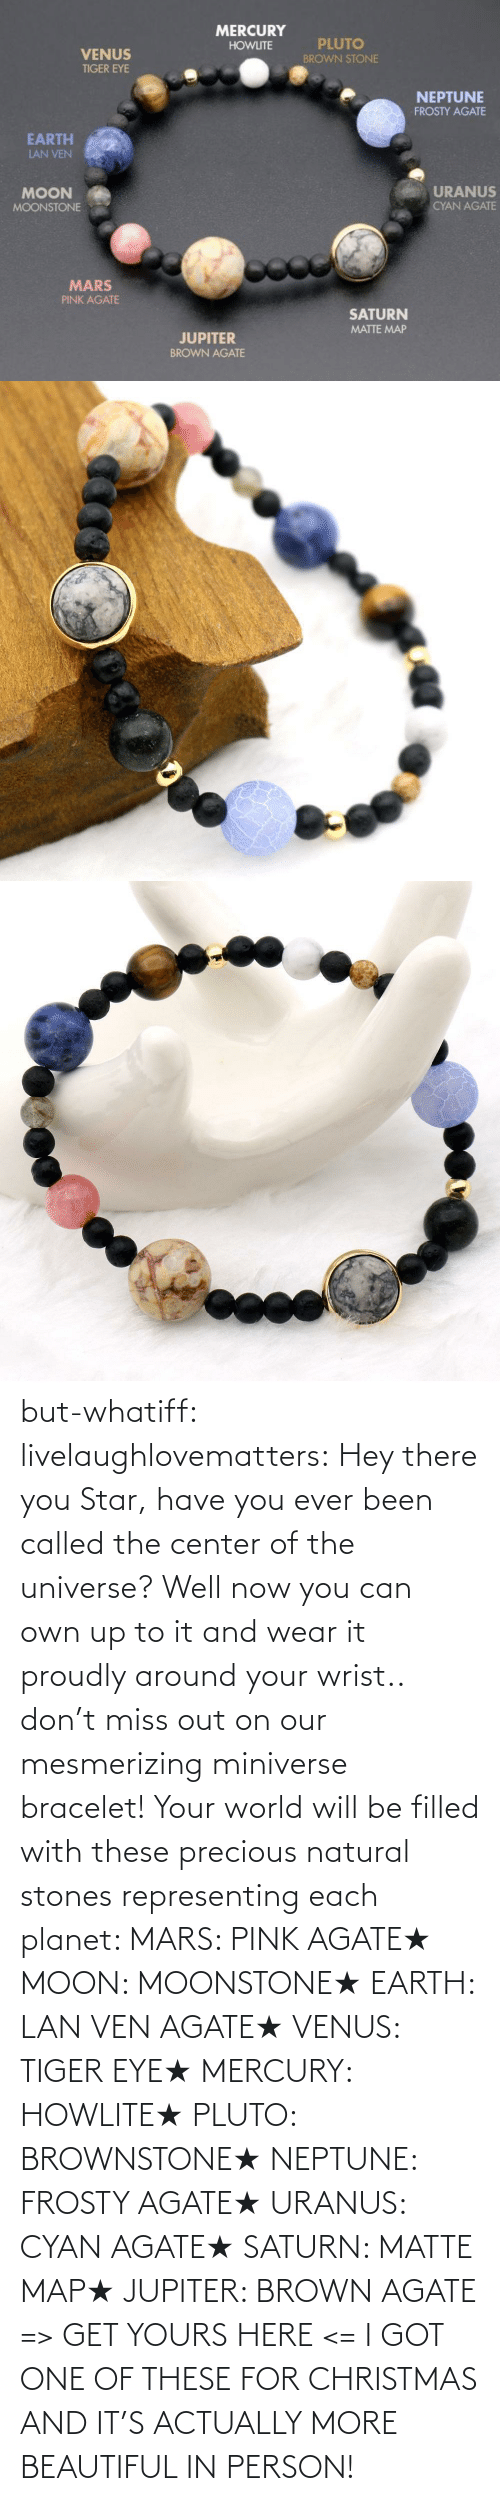 Have: but-whatiff:  livelaughlovematters:  Hey there you Star, have you ever been called the center of the universe? Well now you can own up to it and wear it proudly around your wrist.. don't miss out on our mesmerizing miniverse bracelet! Your world will be filled with these precious natural stones representing each planet:  MARS: PINK AGATE★ MOON: MOONSTONE★ EARTH: LAN VEN AGATE★ VENUS: TIGER EYE★ MERCURY: HOWLITE★ PLUTO: BROWNSTONE★ NEPTUNE: FROSTY AGATE★ URANUS: CYAN AGATE★ SATURN: MATTE MAP★ JUPITER: BROWN AGATE => GET YOURS HERE <=  I GOT ONE OF THESE FOR CHRISTMAS AND IT'S ACTUALLY MORE BEAUTIFUL IN PERSON!